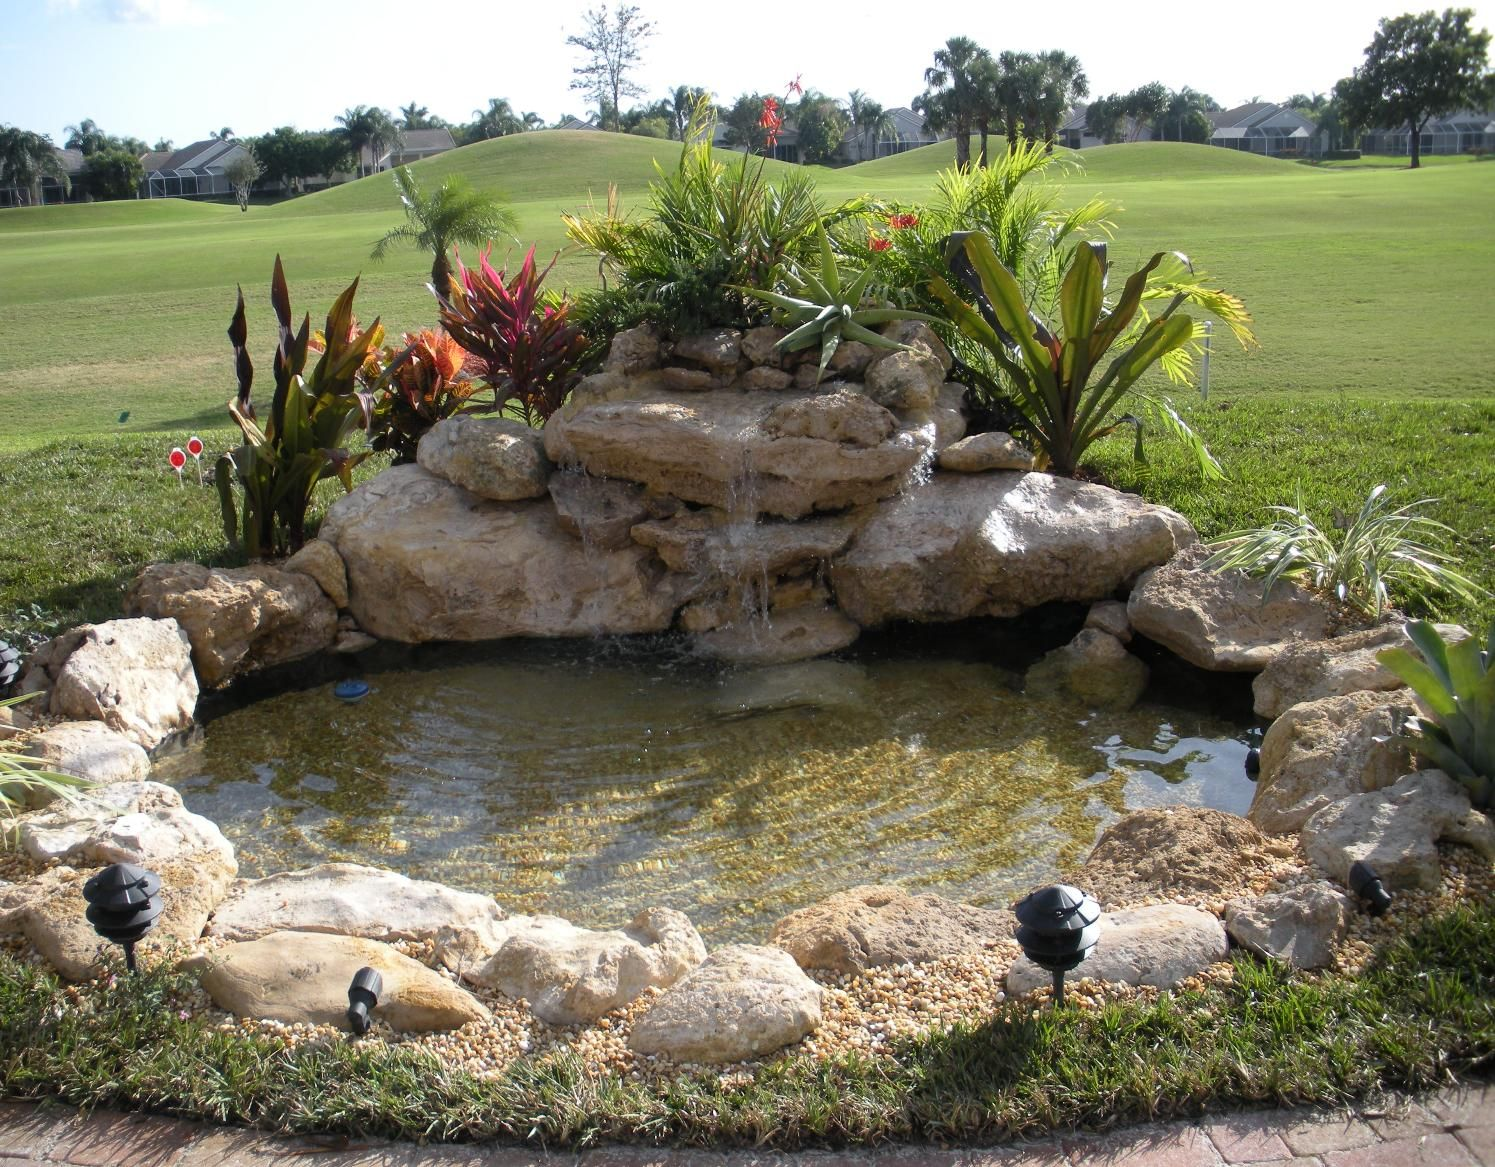 landscaping waterfalls and fish ponds | Ways to Maintain Your ...